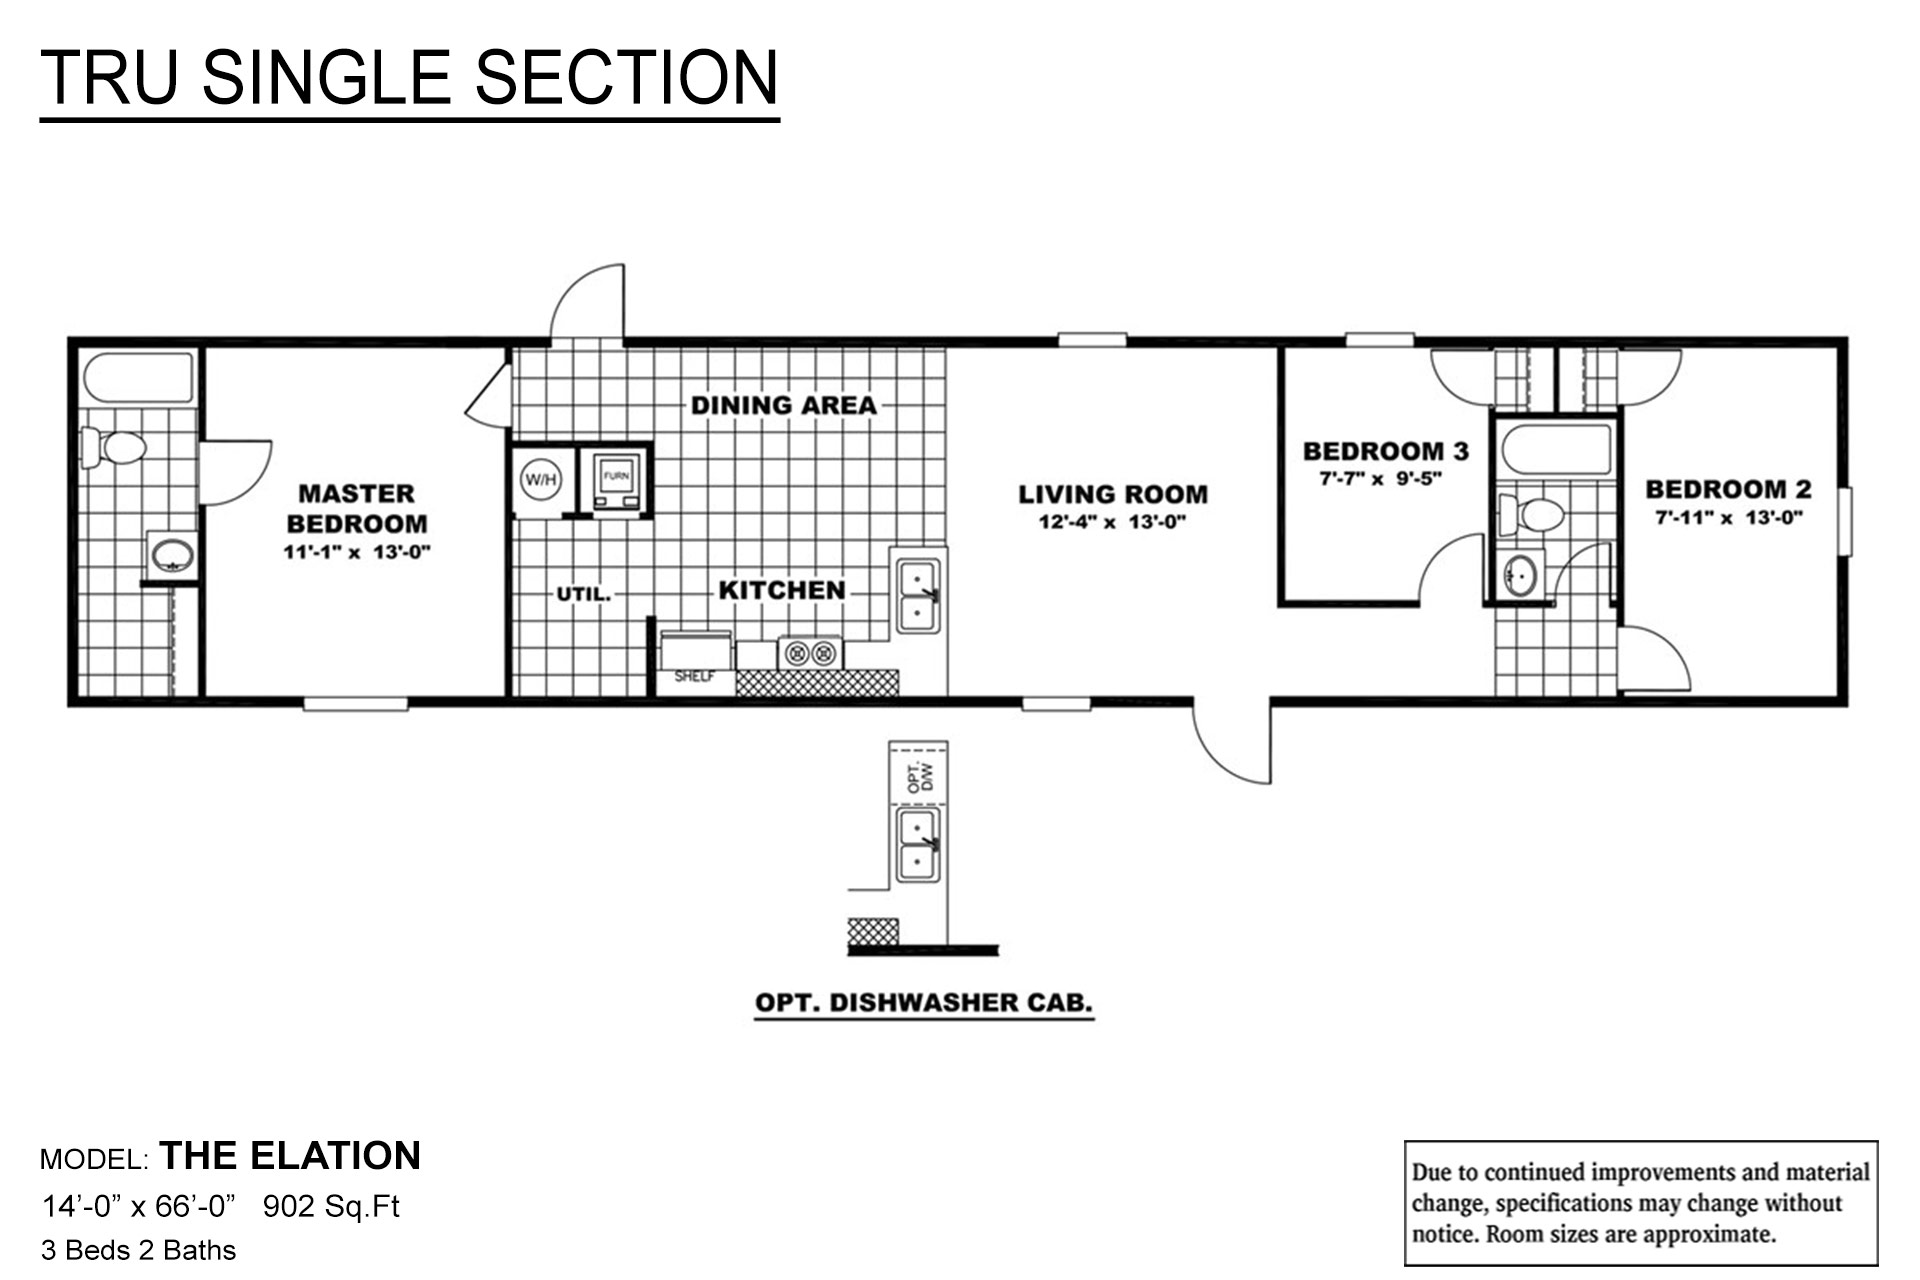 TRU Single Section Elation Layout